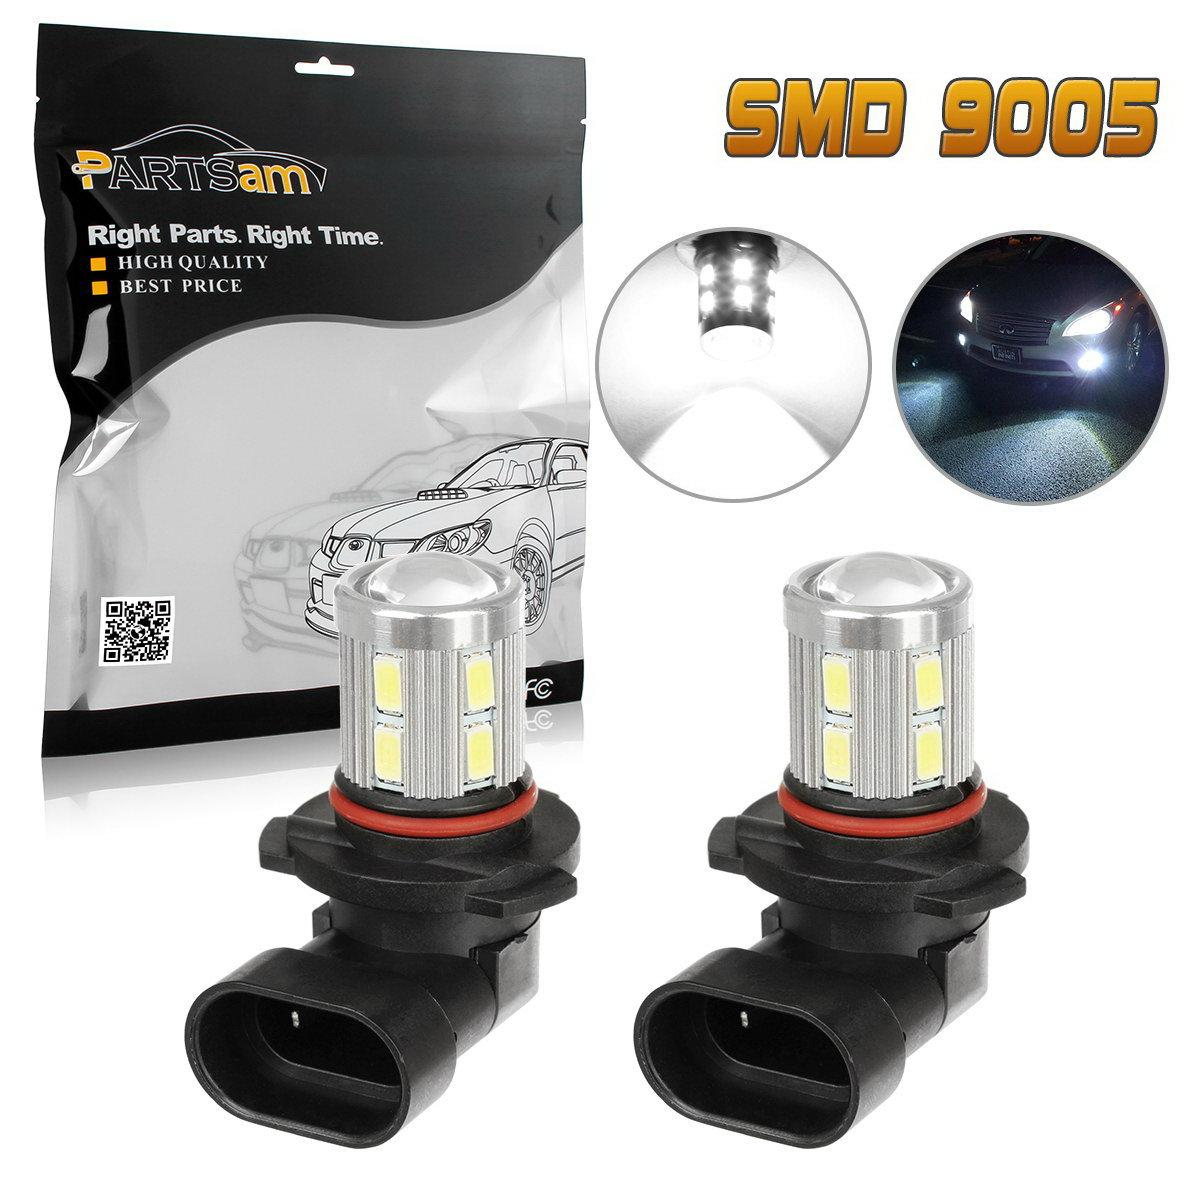 9140 Fog Light Bulb: 2 X High Power 9145 9140 H10 Bulbs For Driving Fog Light White CREE Q5 SMD  LED,Lighting